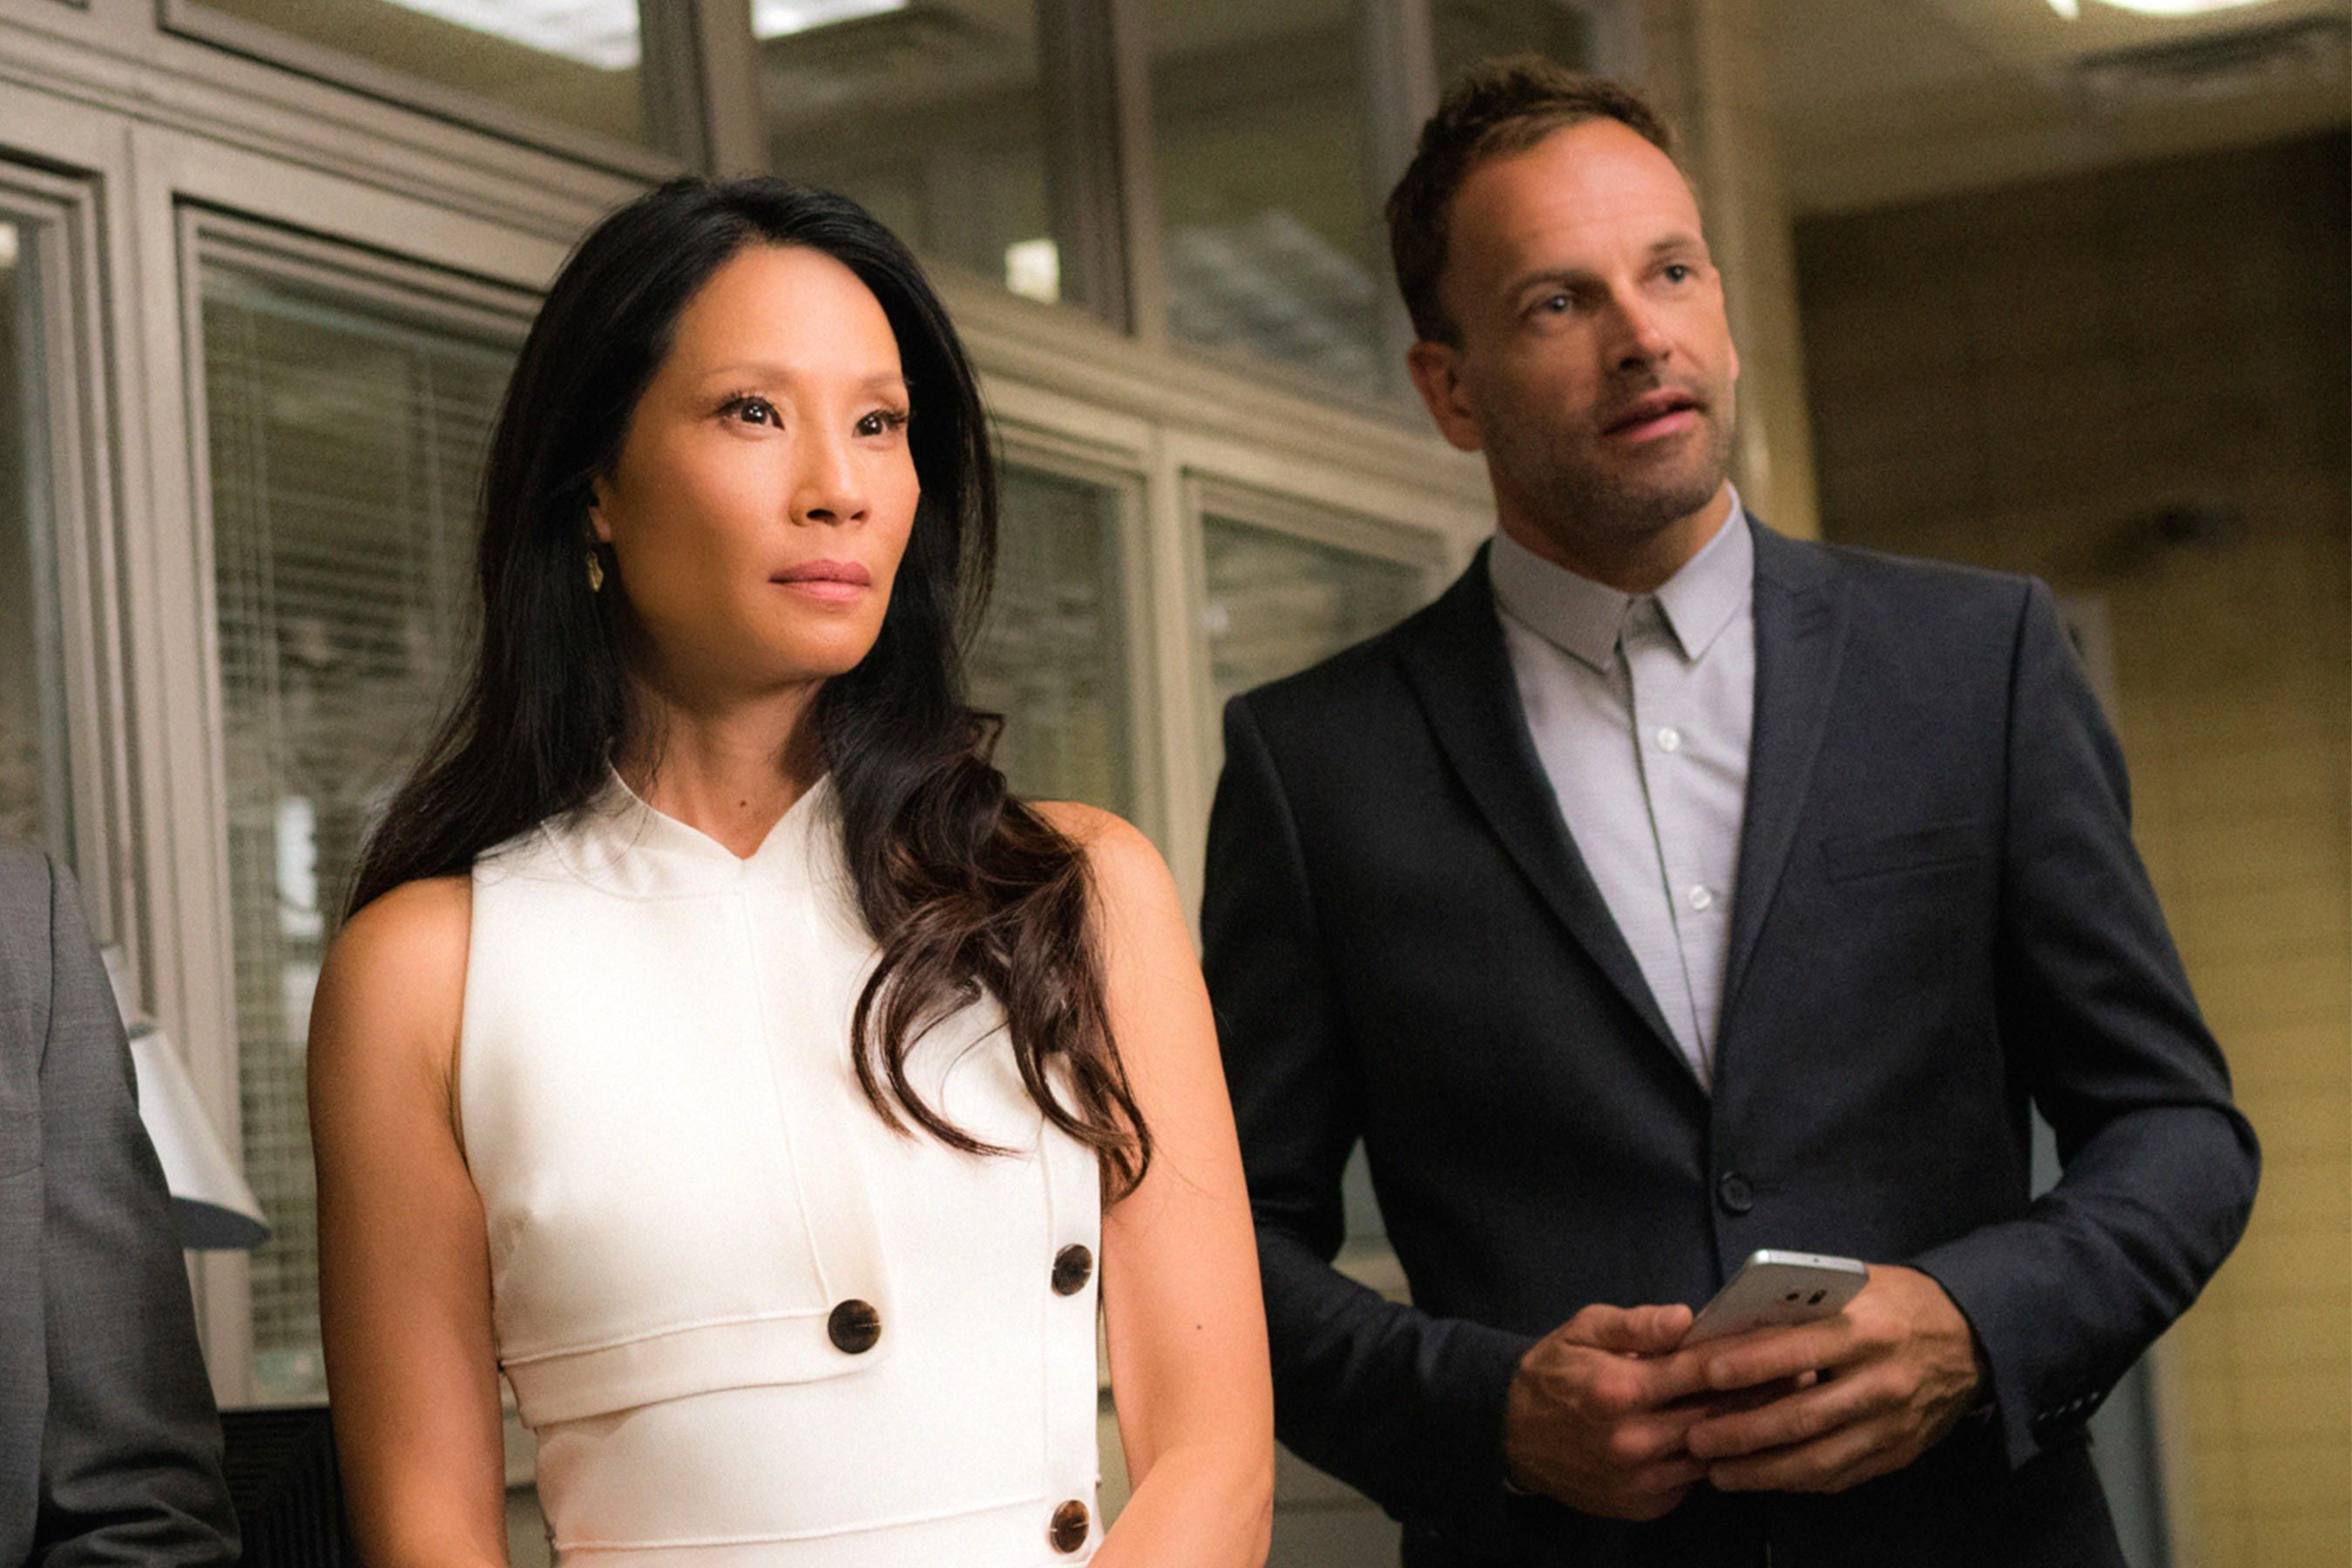 Elementary to end after upcoming seventh season on CBS